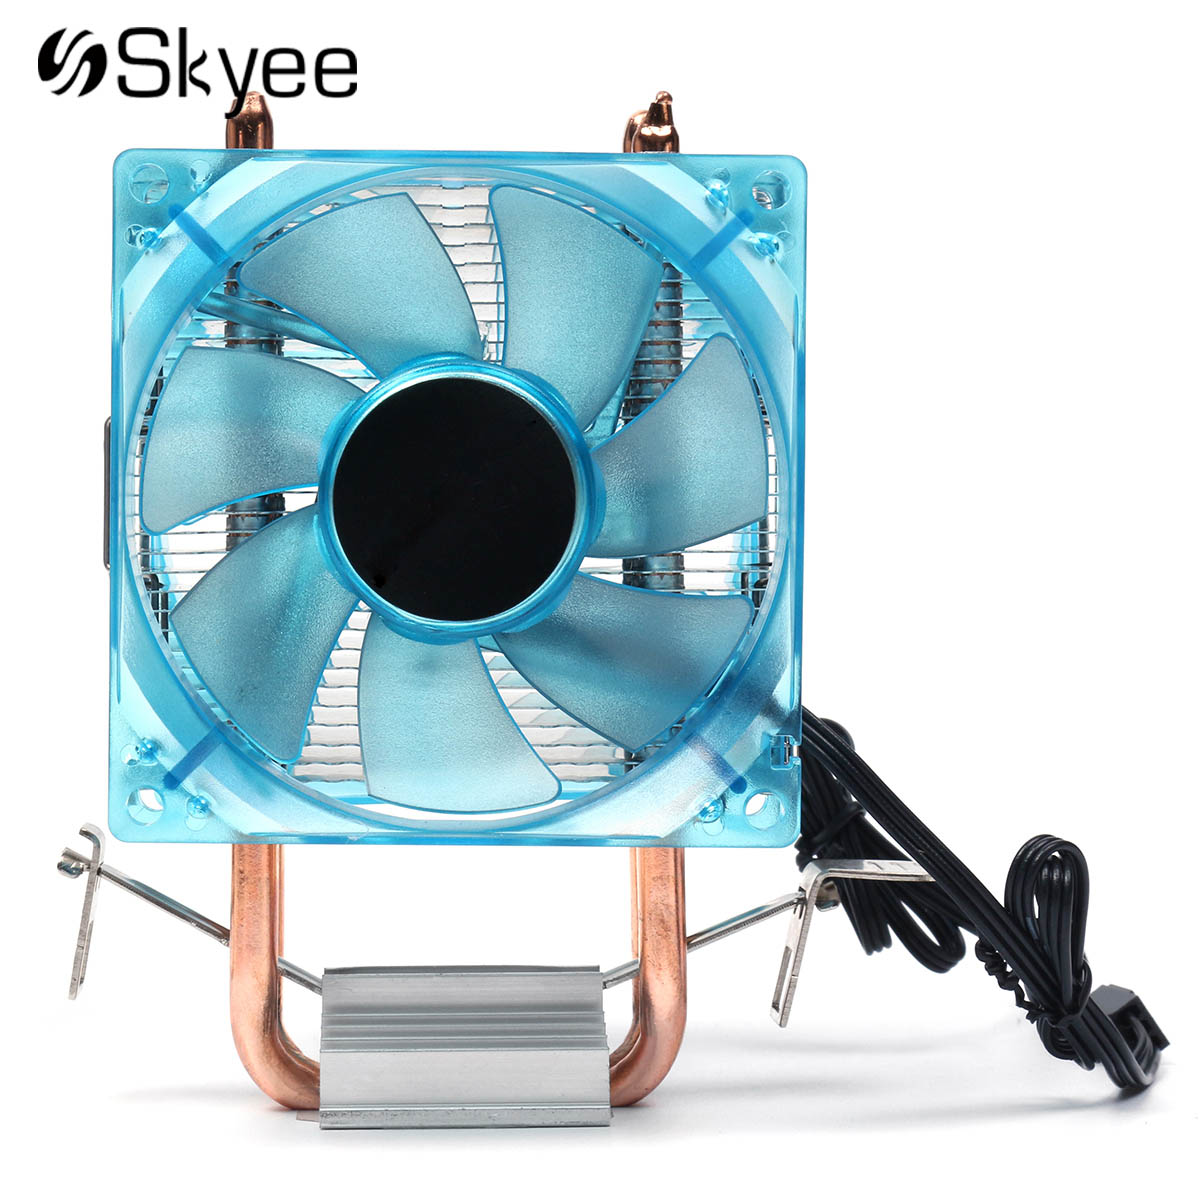 90mm Dual Copper Pipe LED CPU Cooling Fan 3pin Aluminum Heatsink Cooler Cooling Fan for AMD FM1 AM2 + AM3 +Intel 775 1155 1156 pcooler s90f 10cm 4 pin pwm cooling fan 4 copper heat pipes led cpu cooler cooling fan heat sink for intel lga775 for amd am2